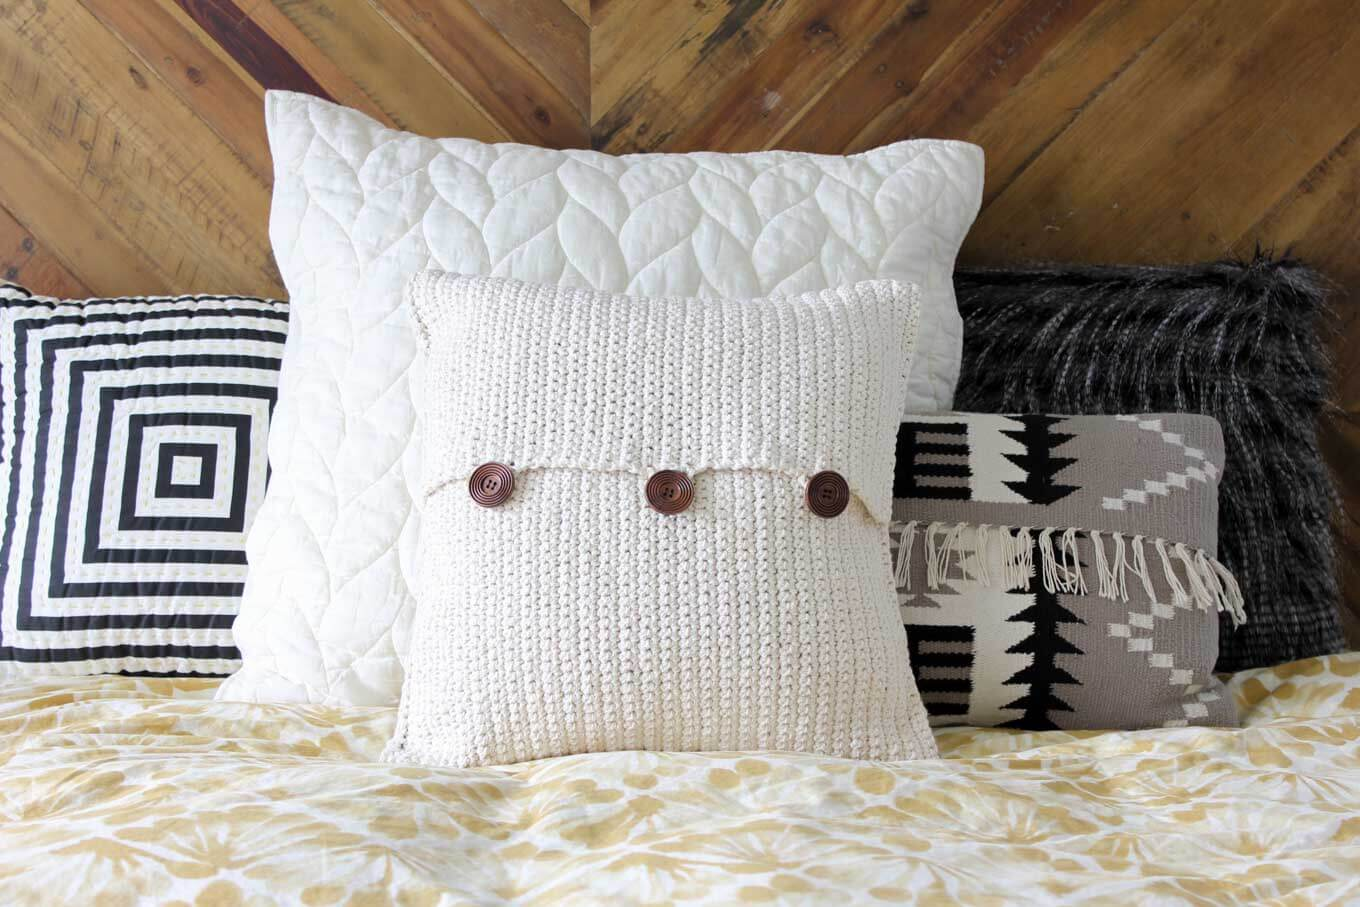 Beginner Crochet Pillow Patterns : Mud Cloth Crochet Pillow Pattern - Free Pattern! - Make ...